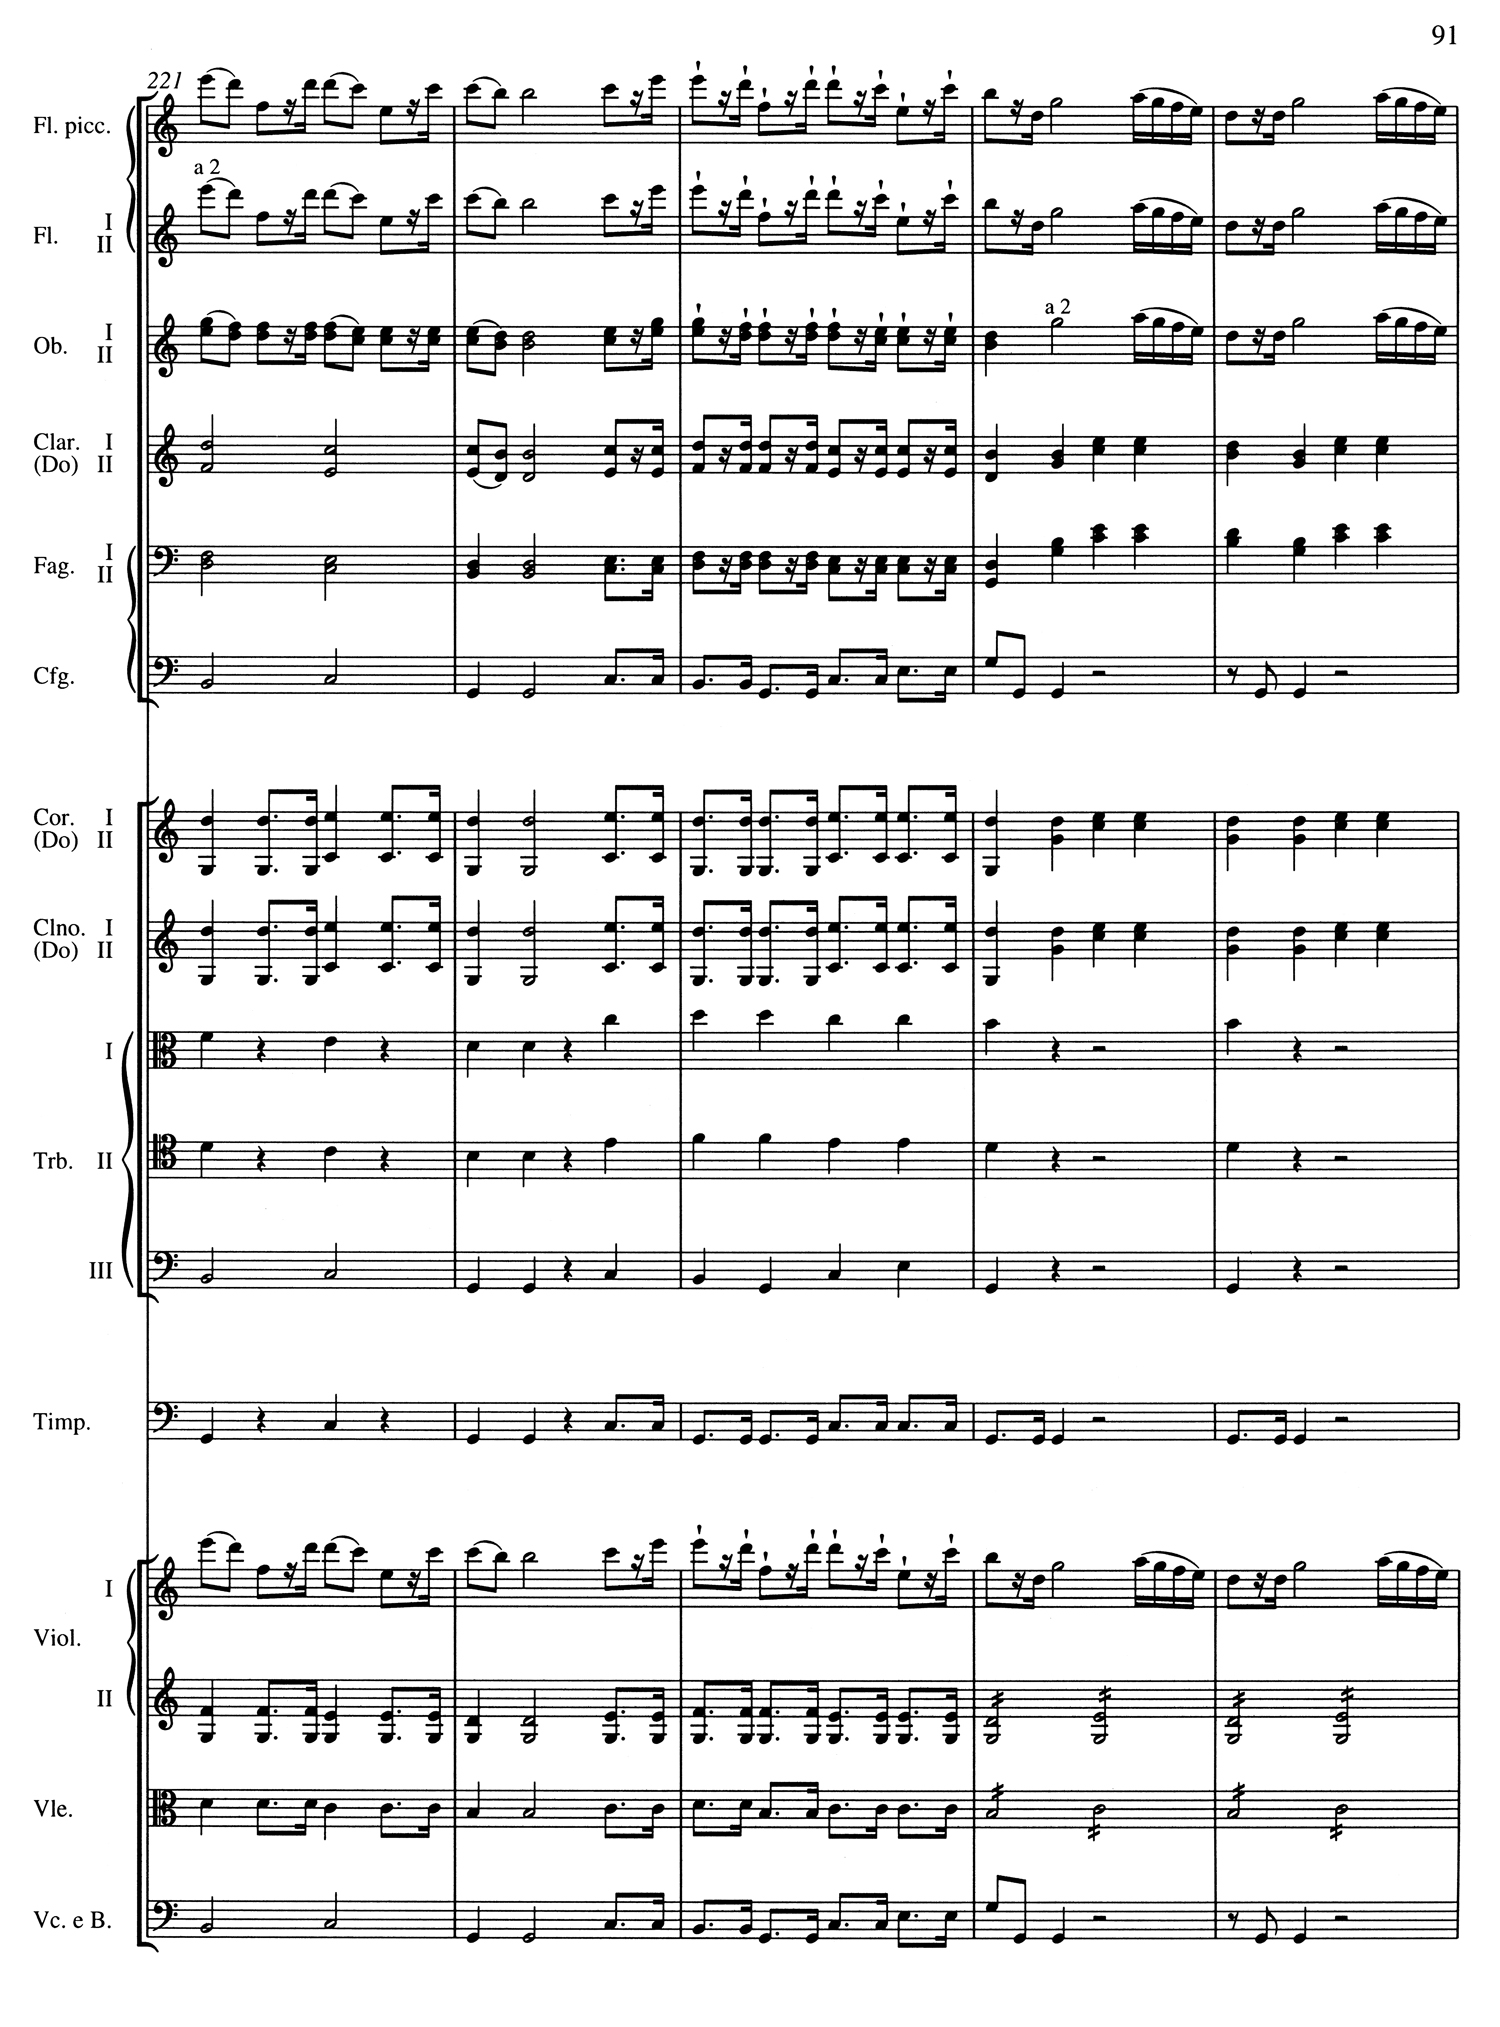 Beethoven 5 Score Page 3.jpg